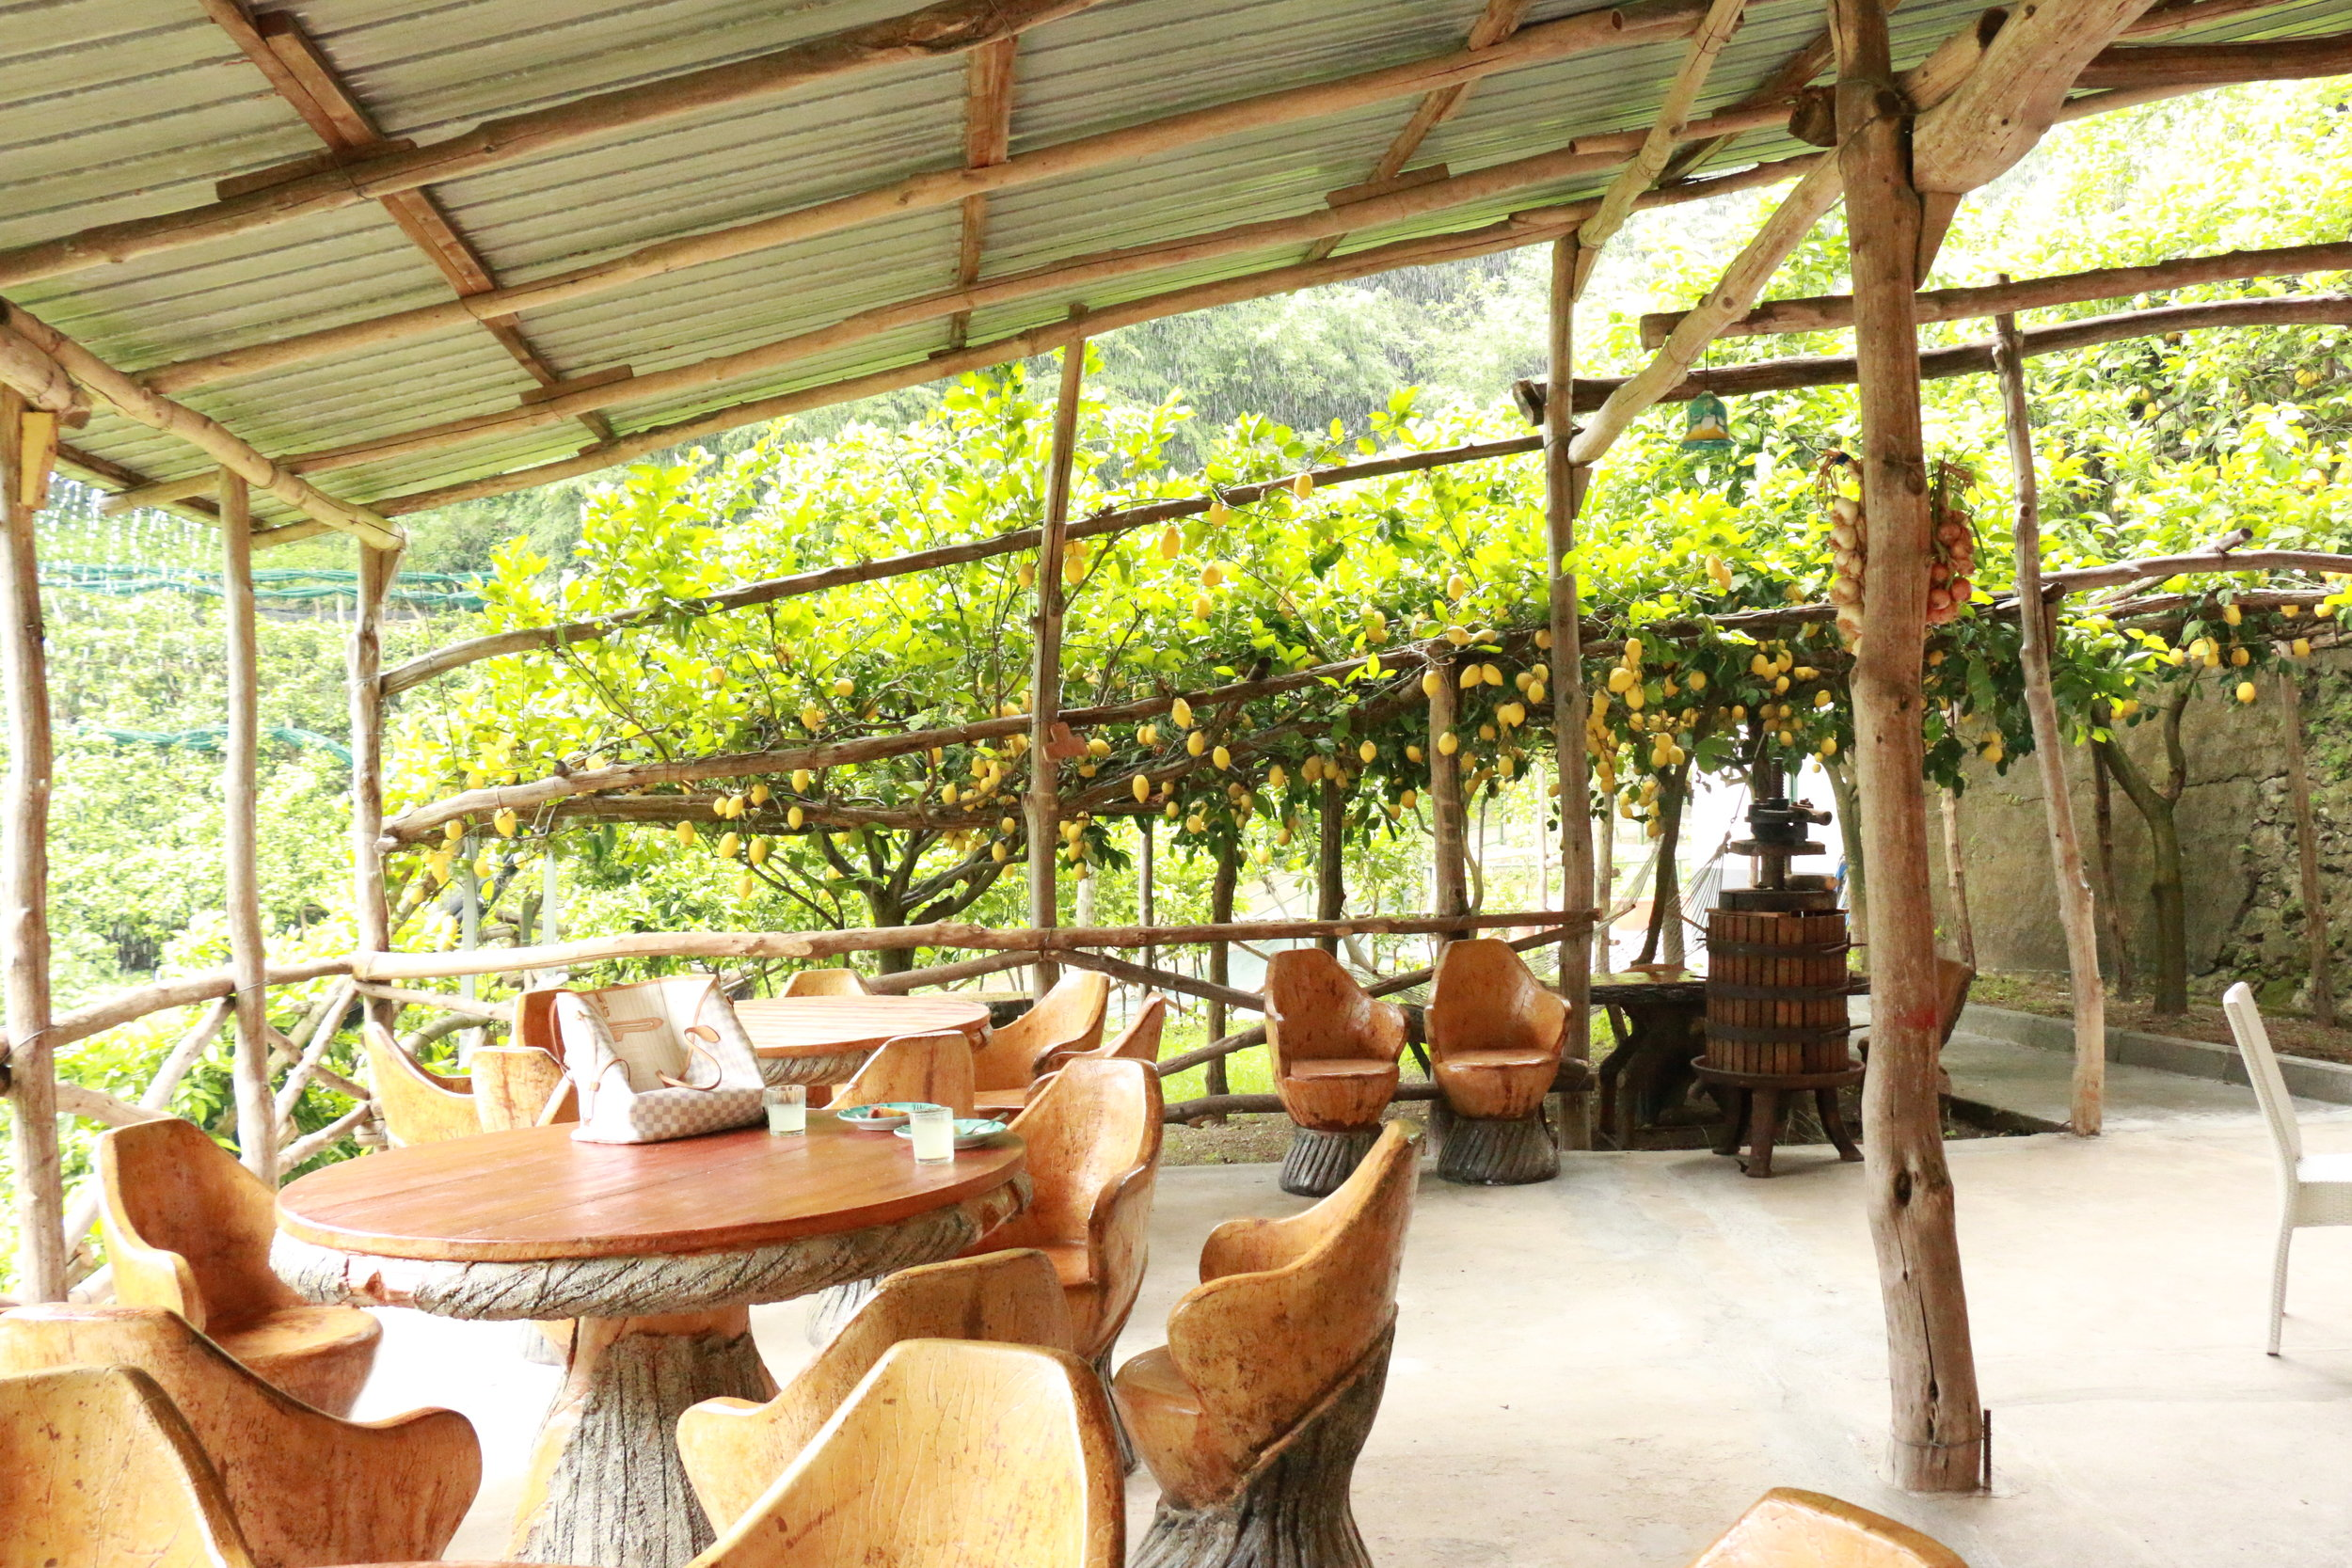 The beautiful dining area where we get to dine alfresco after we finish cooking our meal